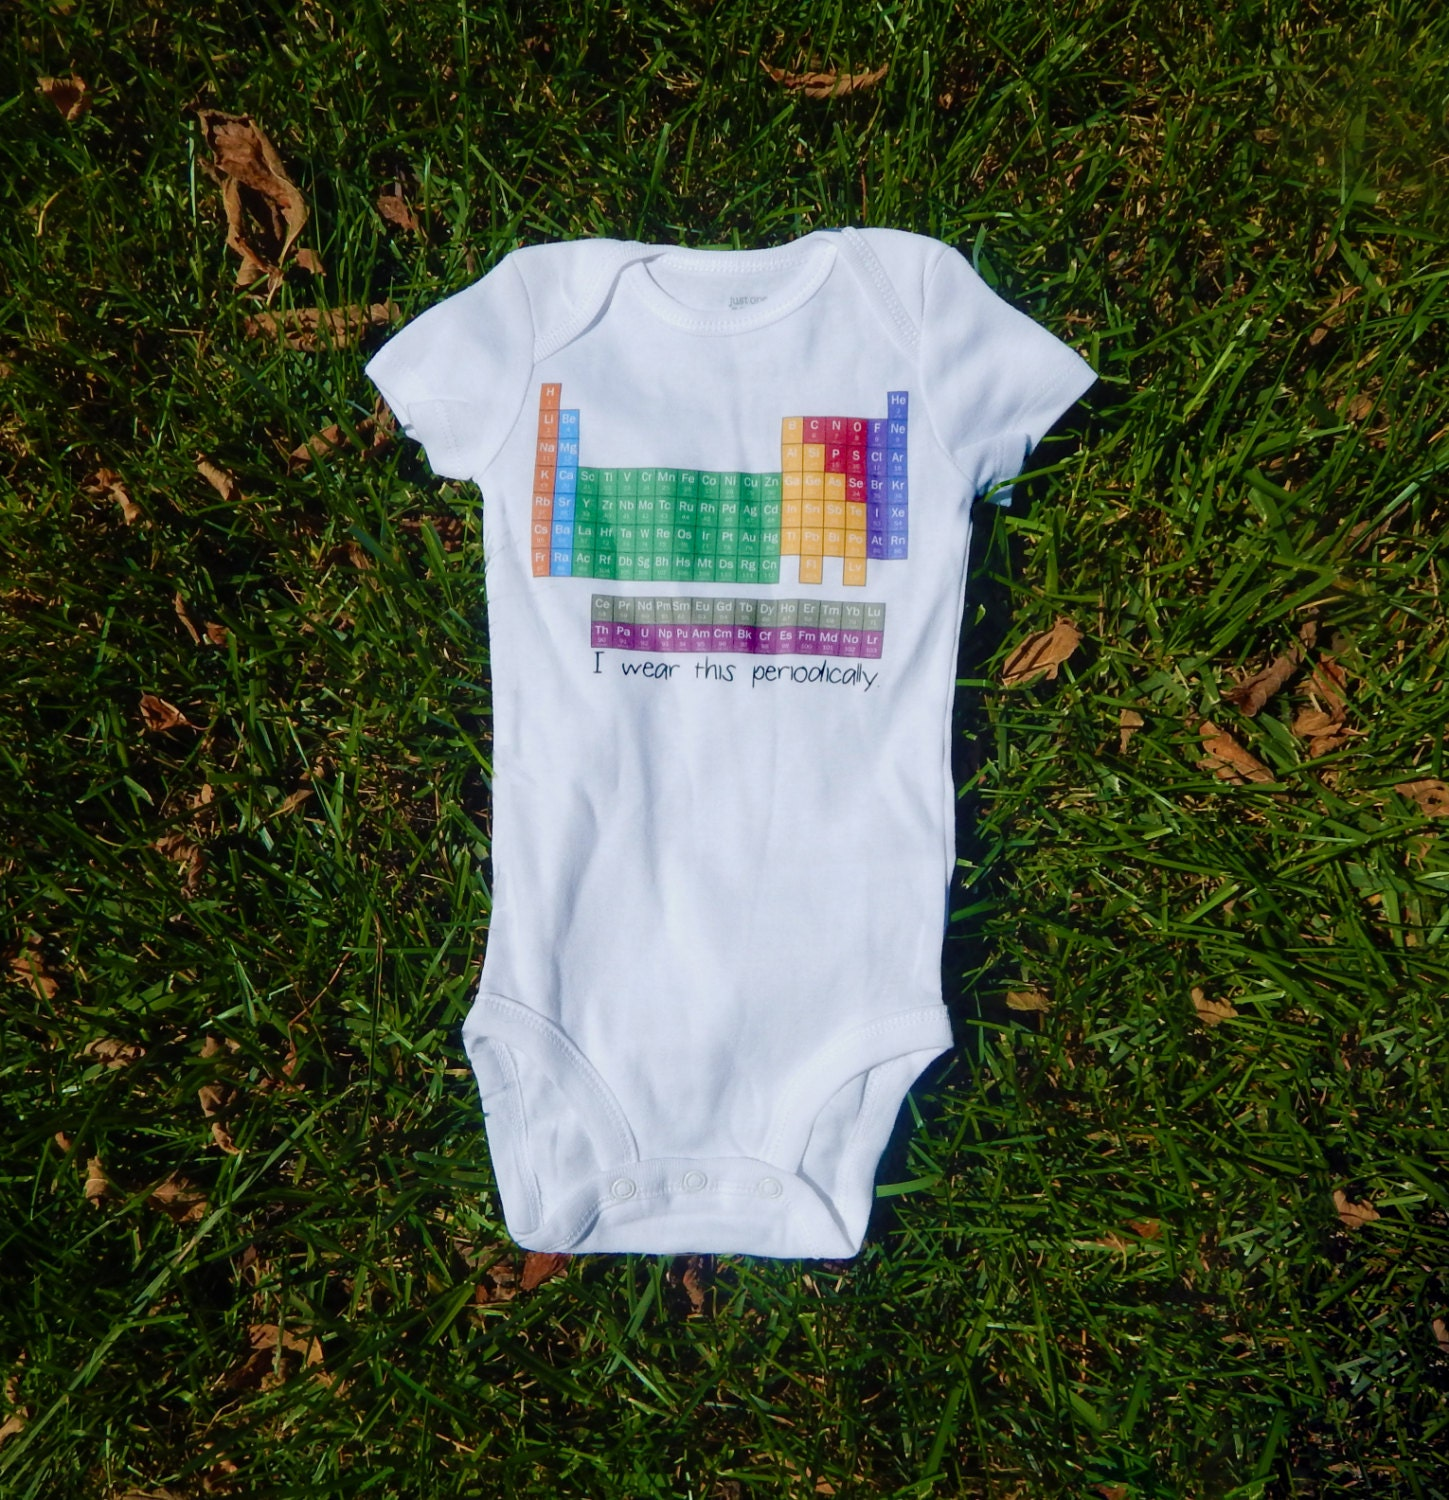 Science Baby Gifts Australia : Ships asap i wear this periodically science baby clothes